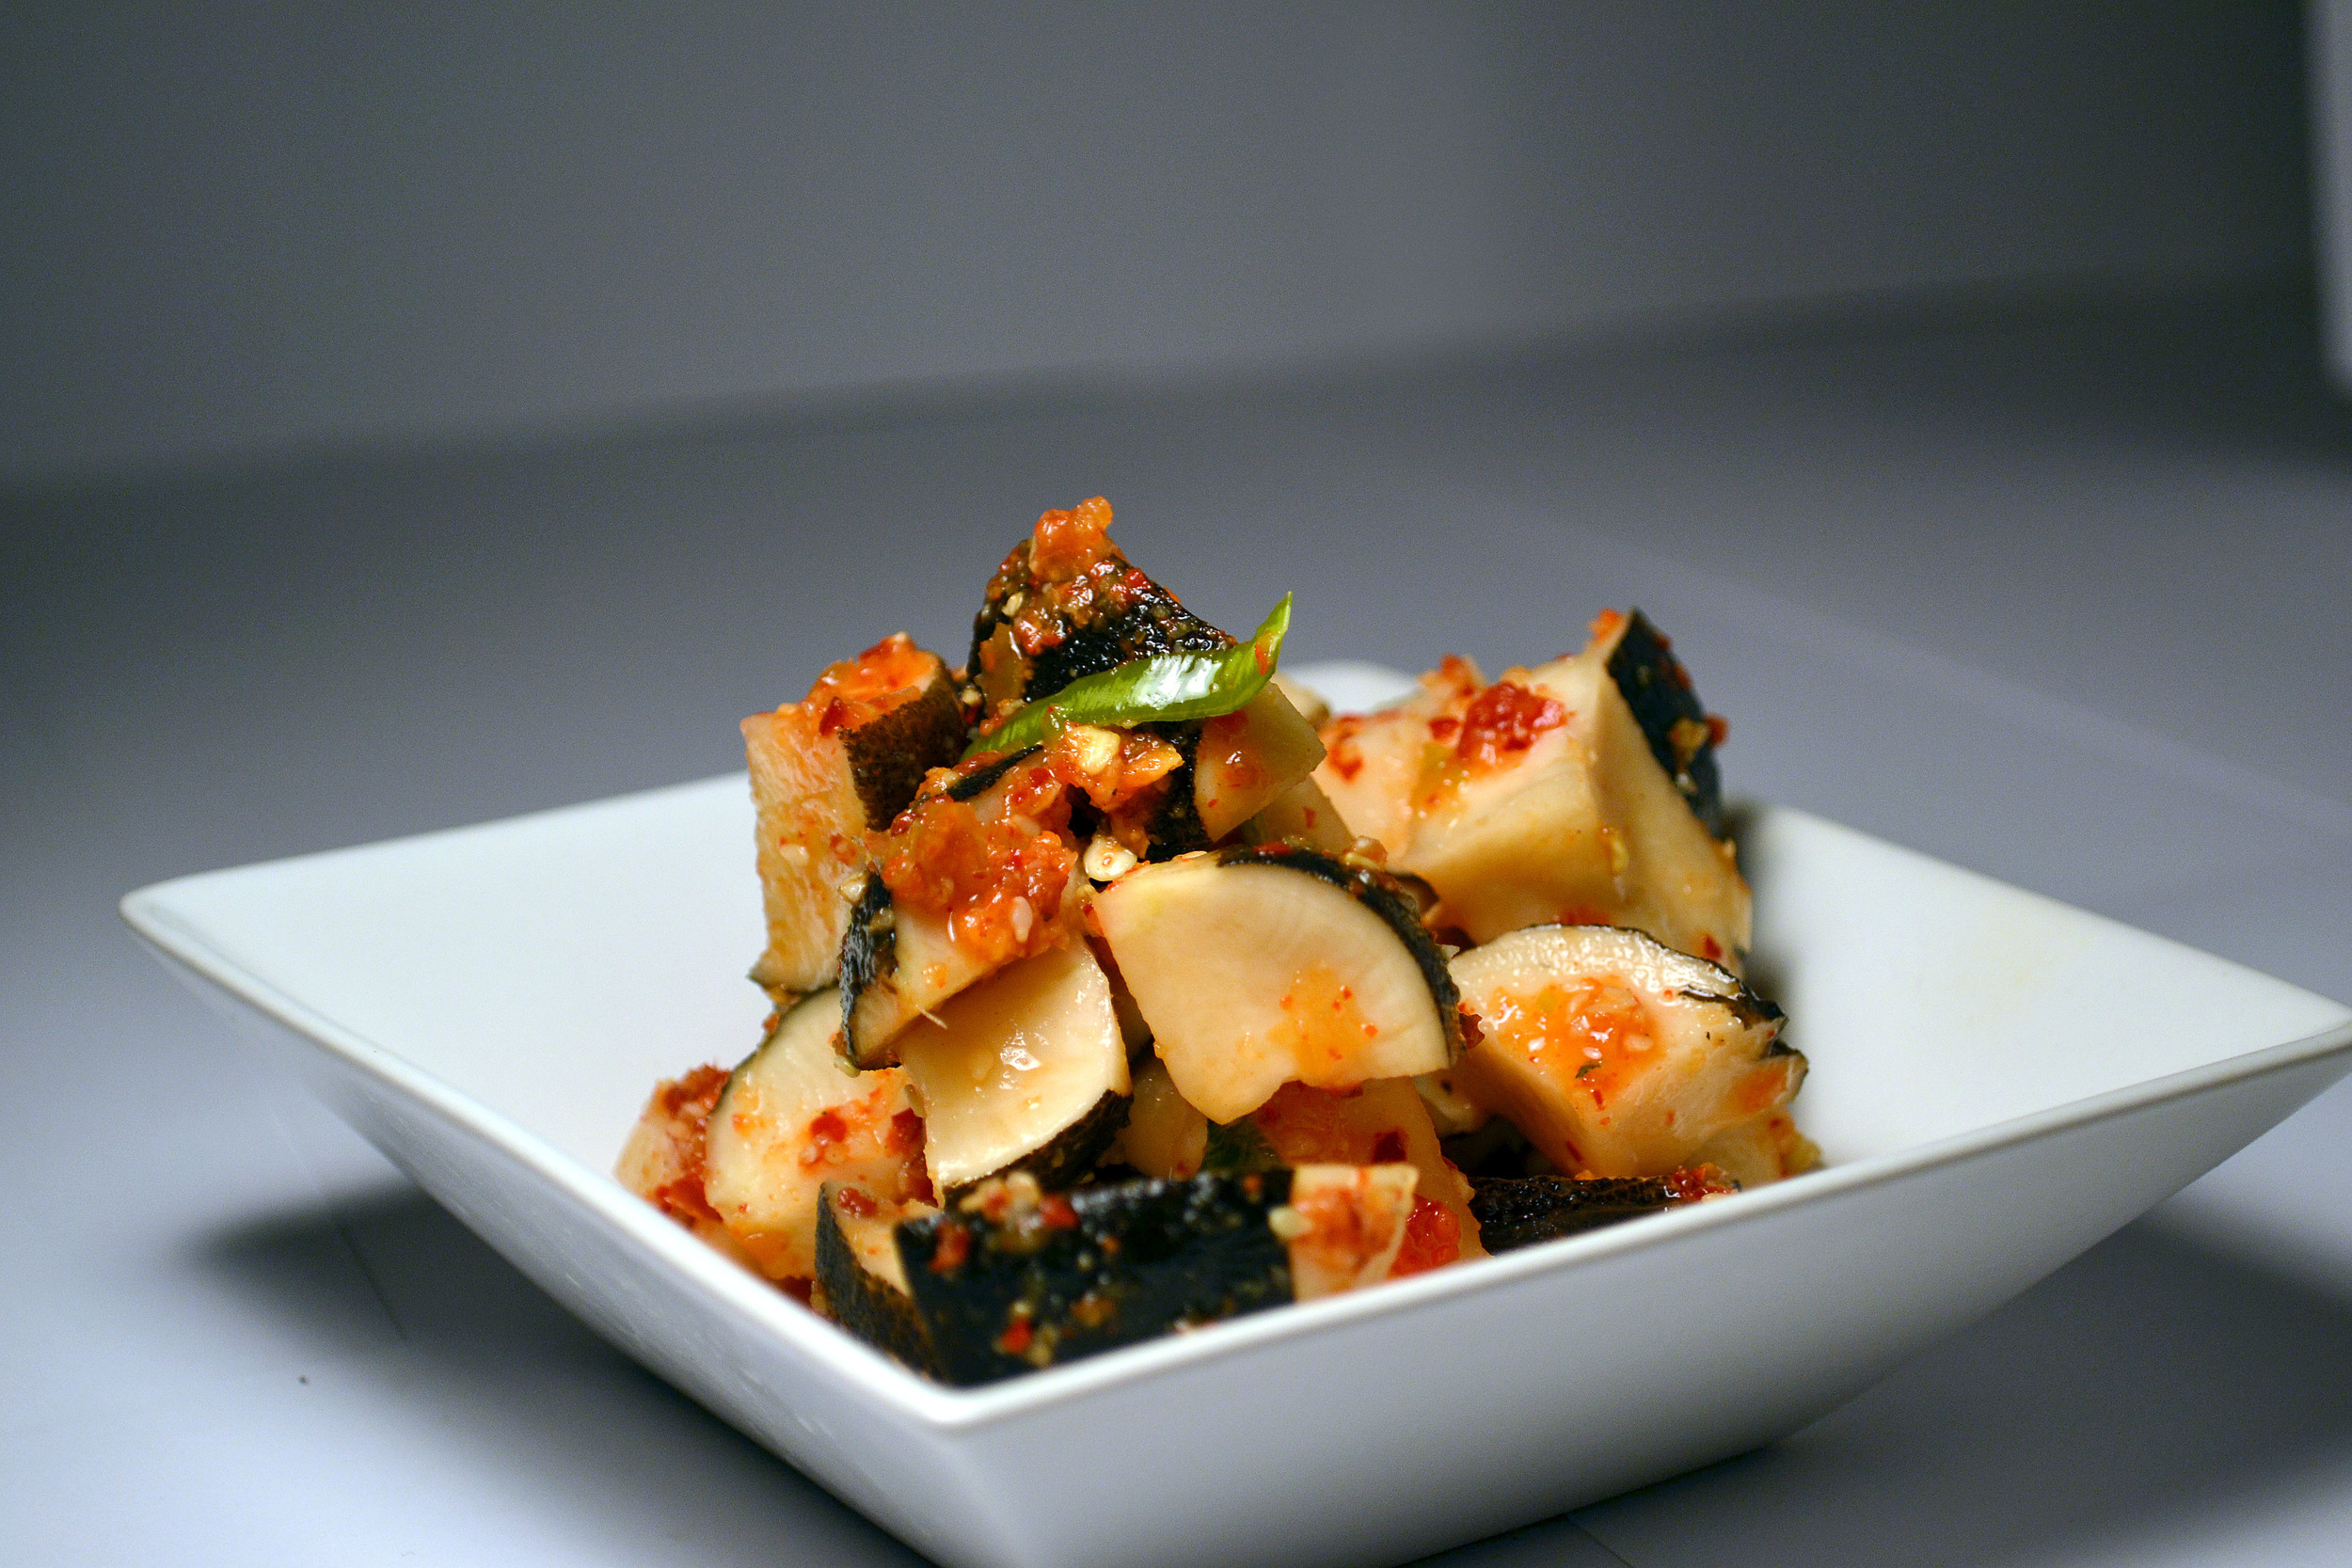 SPANISH RADISH KIMCHI: The Spanish Black Radish is one of the healthiest radishes out there. Most effective in digestive aid and fighting against the common cold, in Kimchi form it is quite the body booster!